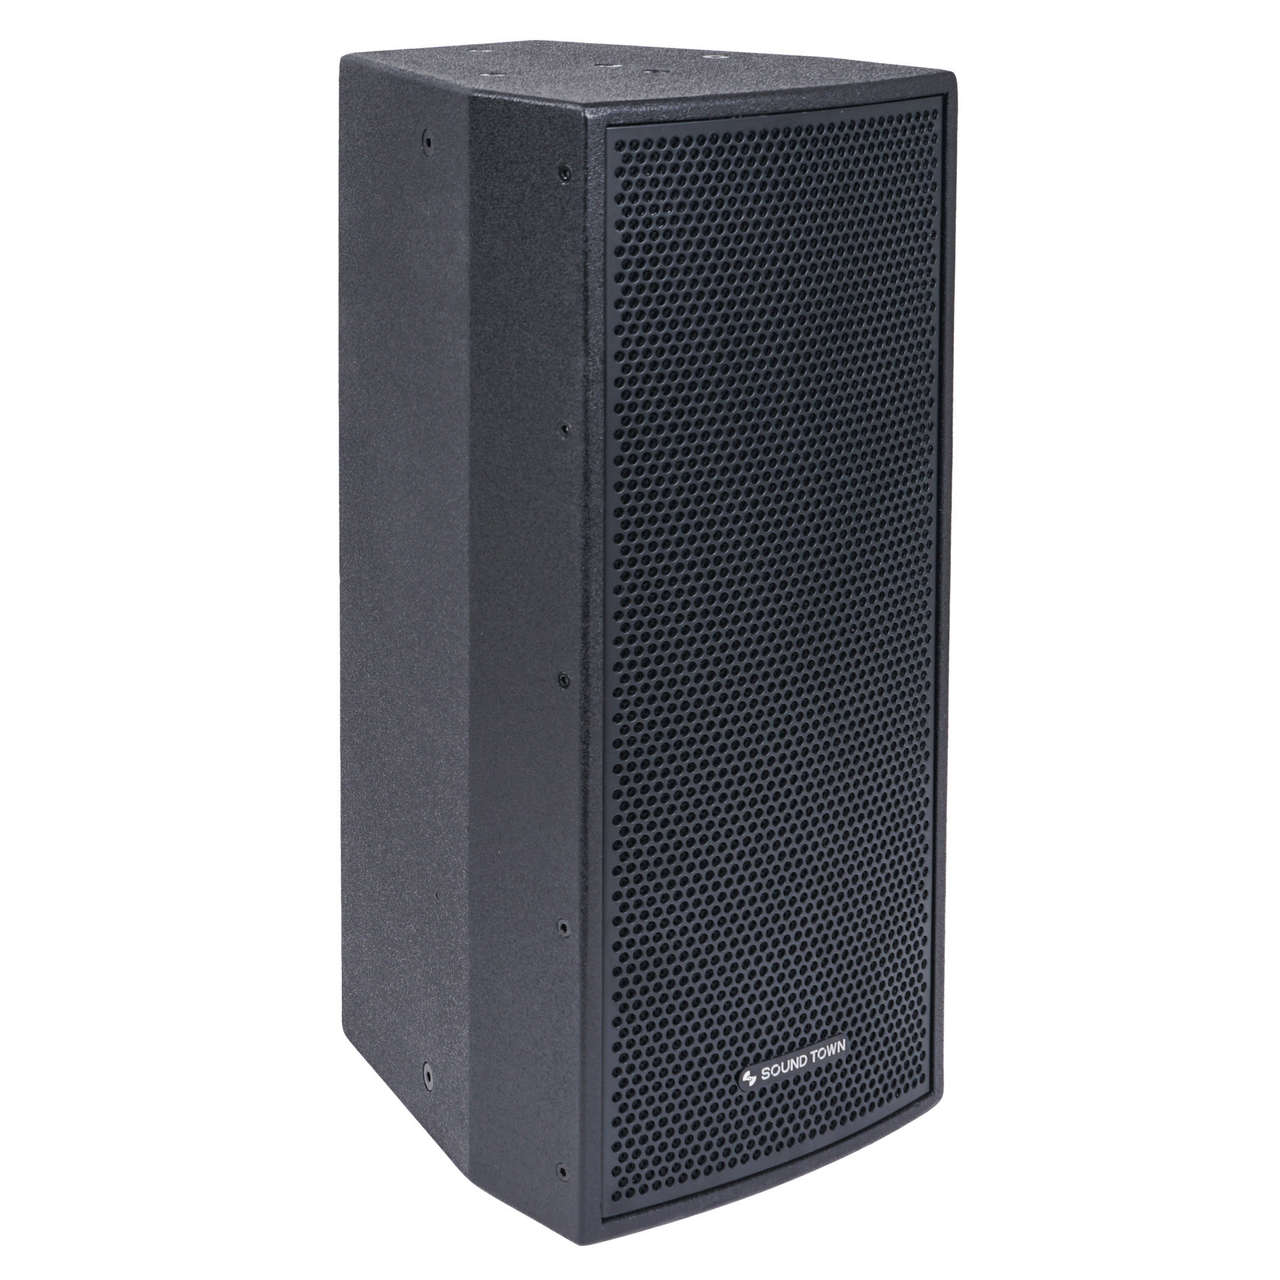 "CARME-208BV2 <br/> CARME Series Dual 8"" 600W 2-Way Professional PA DJ Monitor Speaker, Black w/ Compression Driver for Installation, Live Sound, Karaoke, Bar, Church"